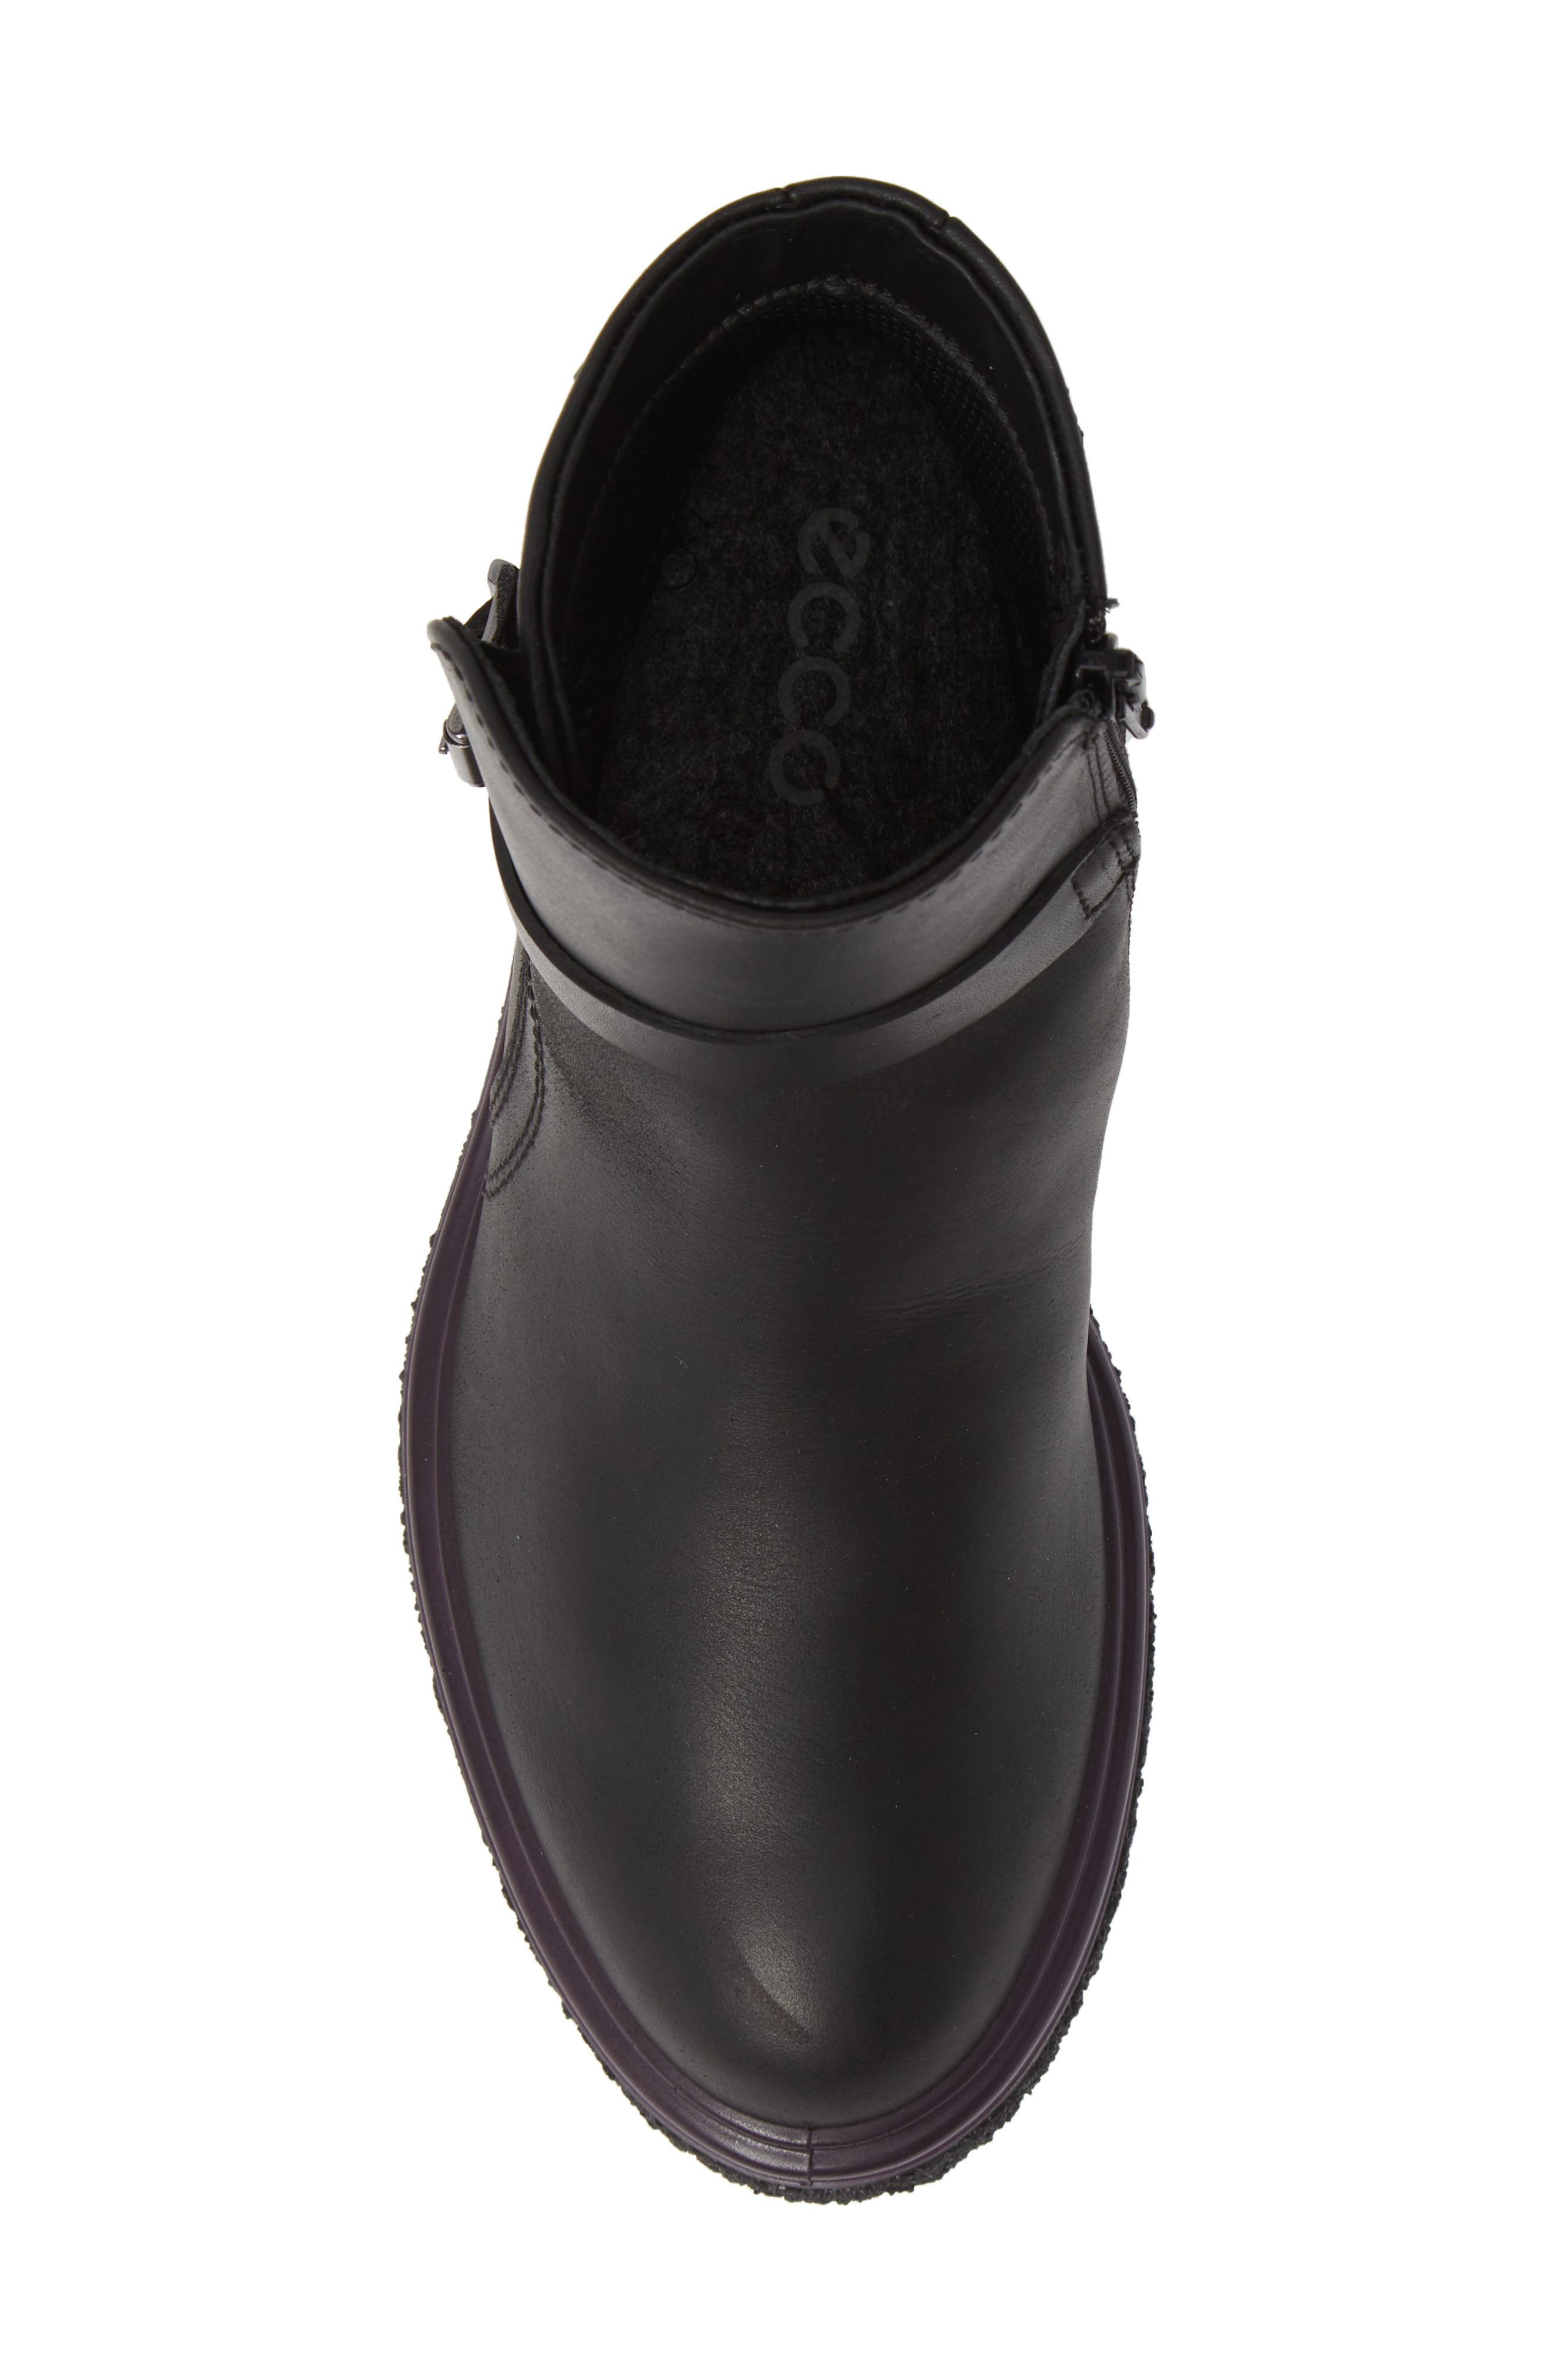 Crepetray GTX Waterproof Bootie,                             Alternate thumbnail 5, color,                             BLACK LEATHER